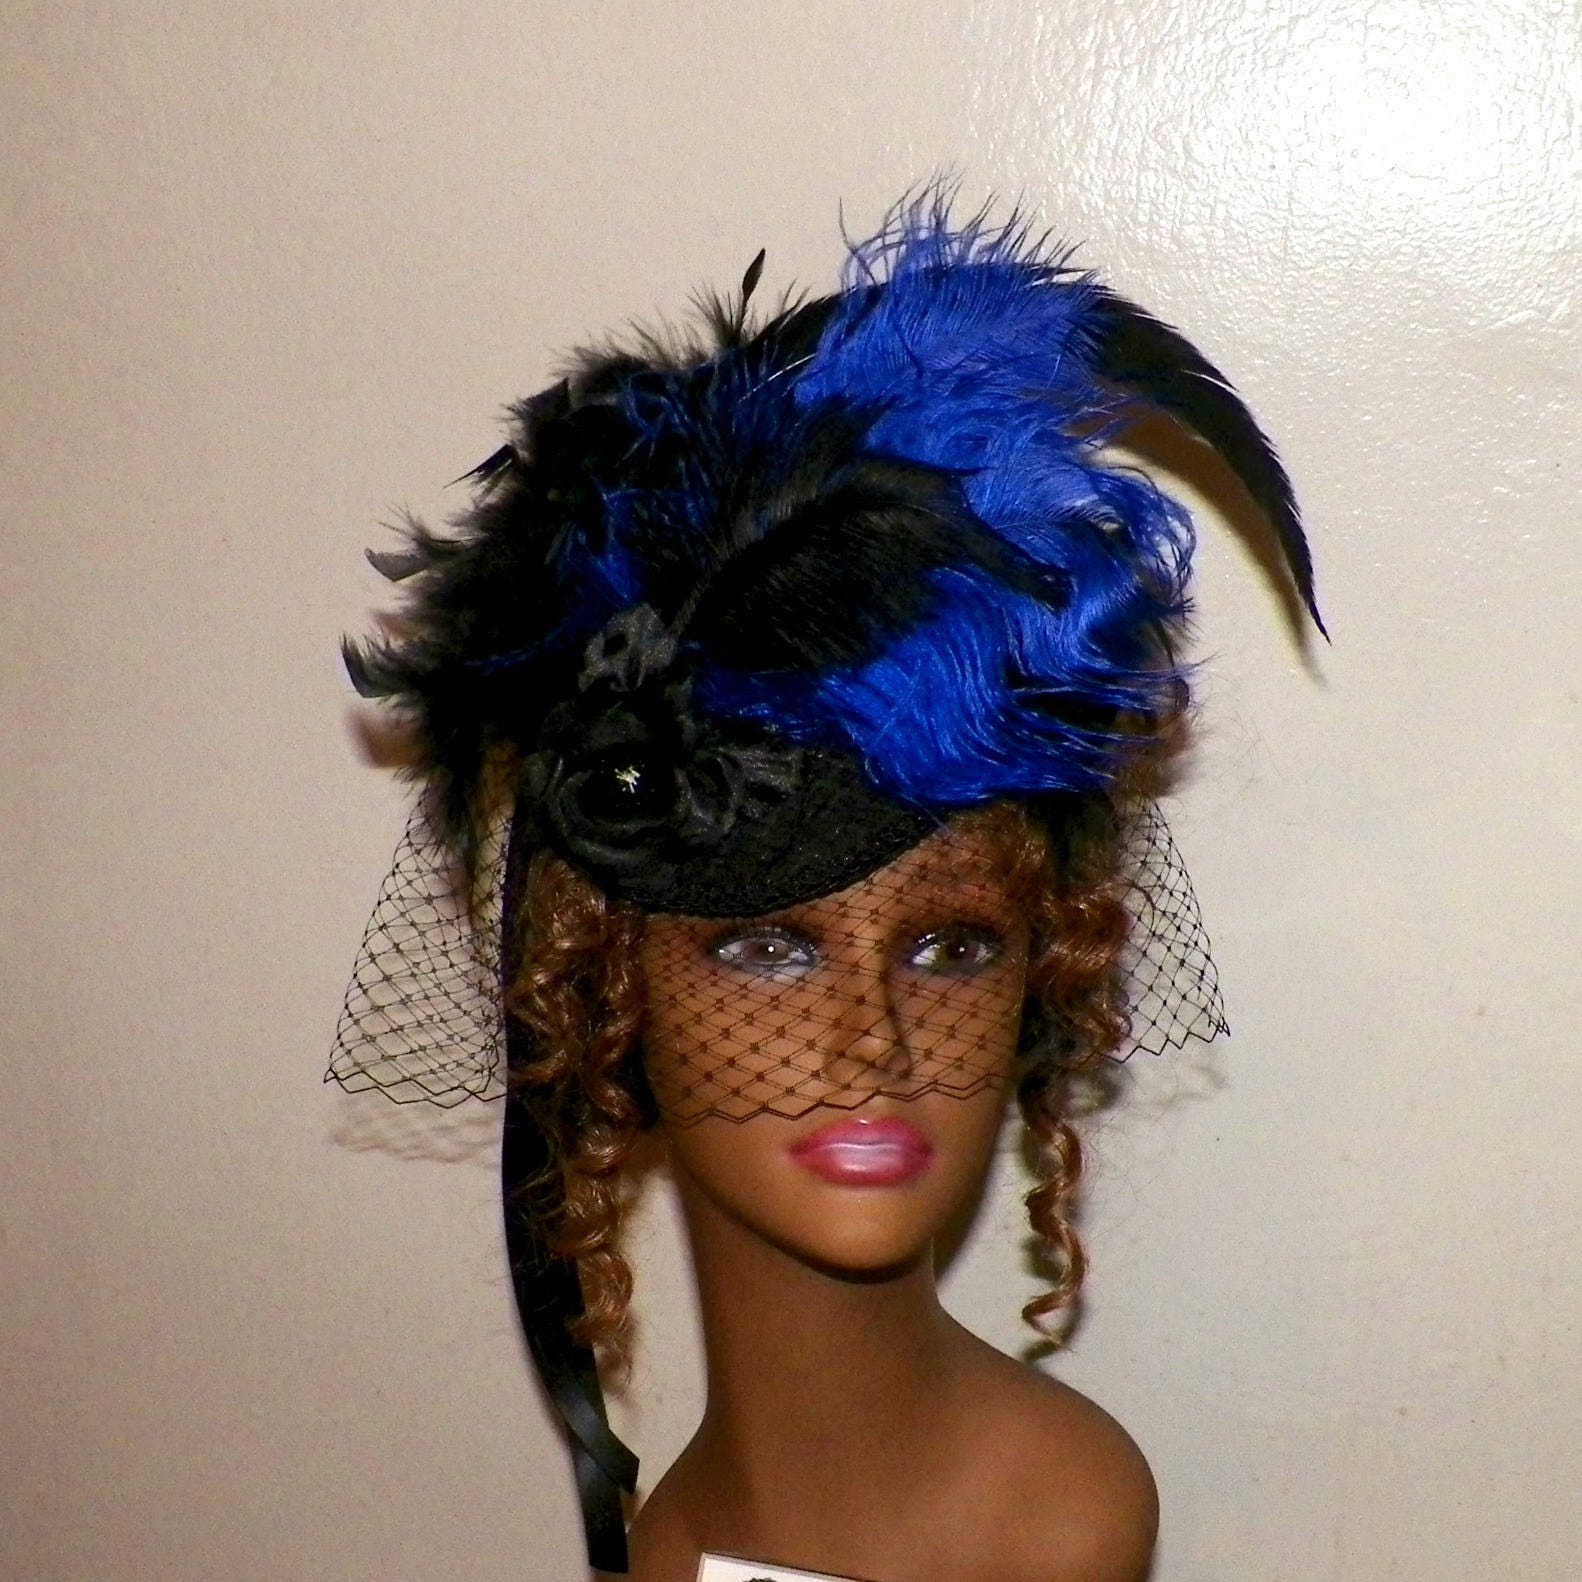 Gothic,Fascinator,Royal,Blue,Black,Victorian,Steampunk,Hat,Feather,Lolita,Headpiece,Old,West,Costume,Marie,Antoinette,Accessories,womans_hat,victorian_hat,Marie_Antoinette,gothic_headdress,gothic_headpiece,lolita_hat,gothic_fascinator,steampunk_hat,feather_headdress,black_fascinator,steampunk_fascinator,blue_hat,blue_fascinator